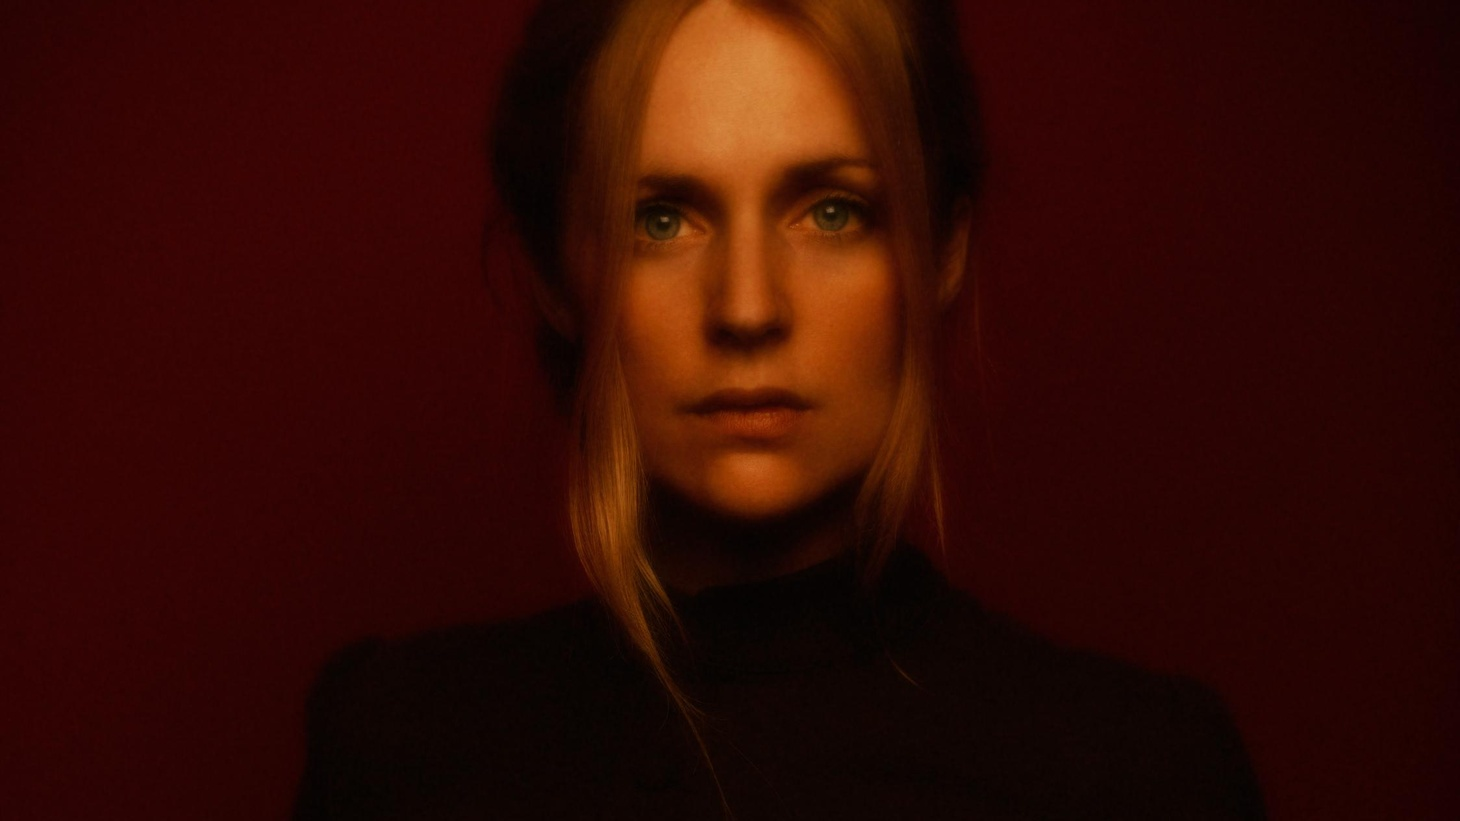 Contemplative Danish singer Agnes Obel was left reeling after 18 months on the road touring behind her debut. Unaccustomed to the spotlight, she found refuge in...